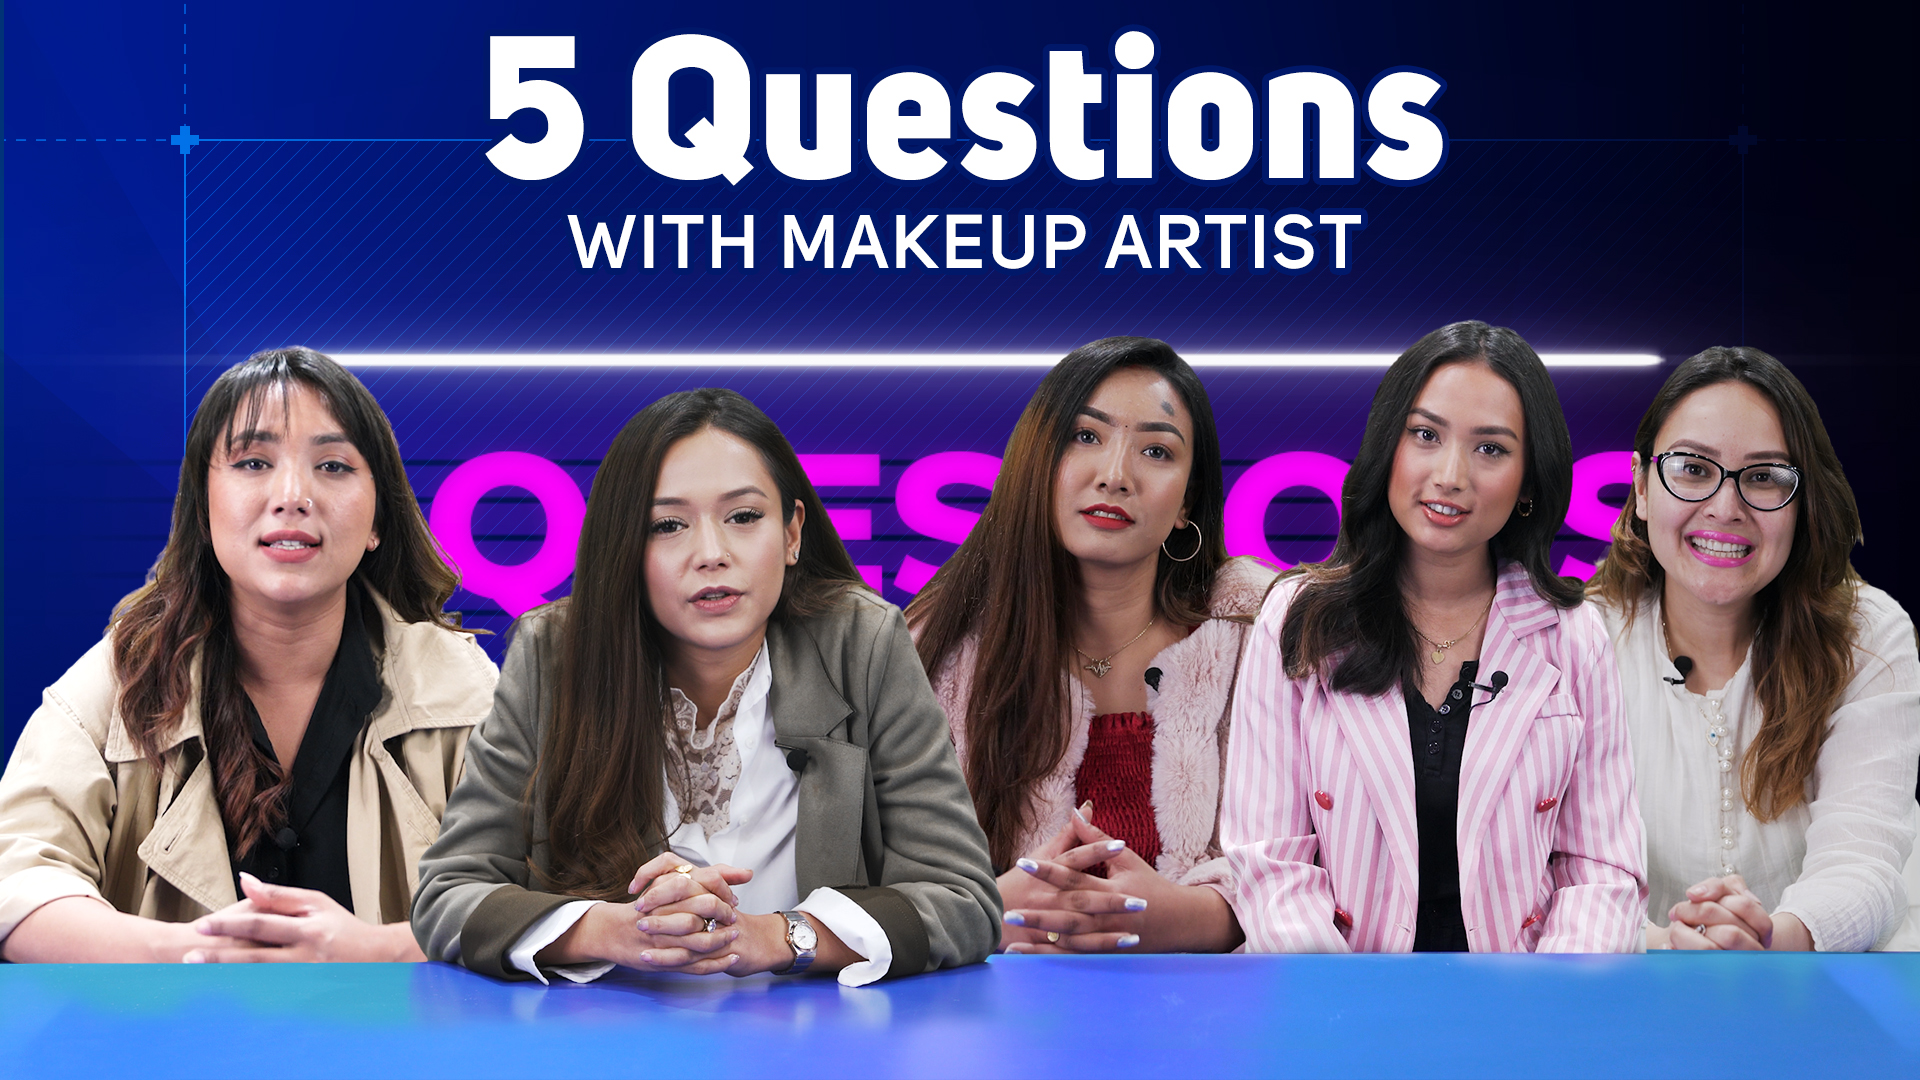 5 Questions with Makeup Artists